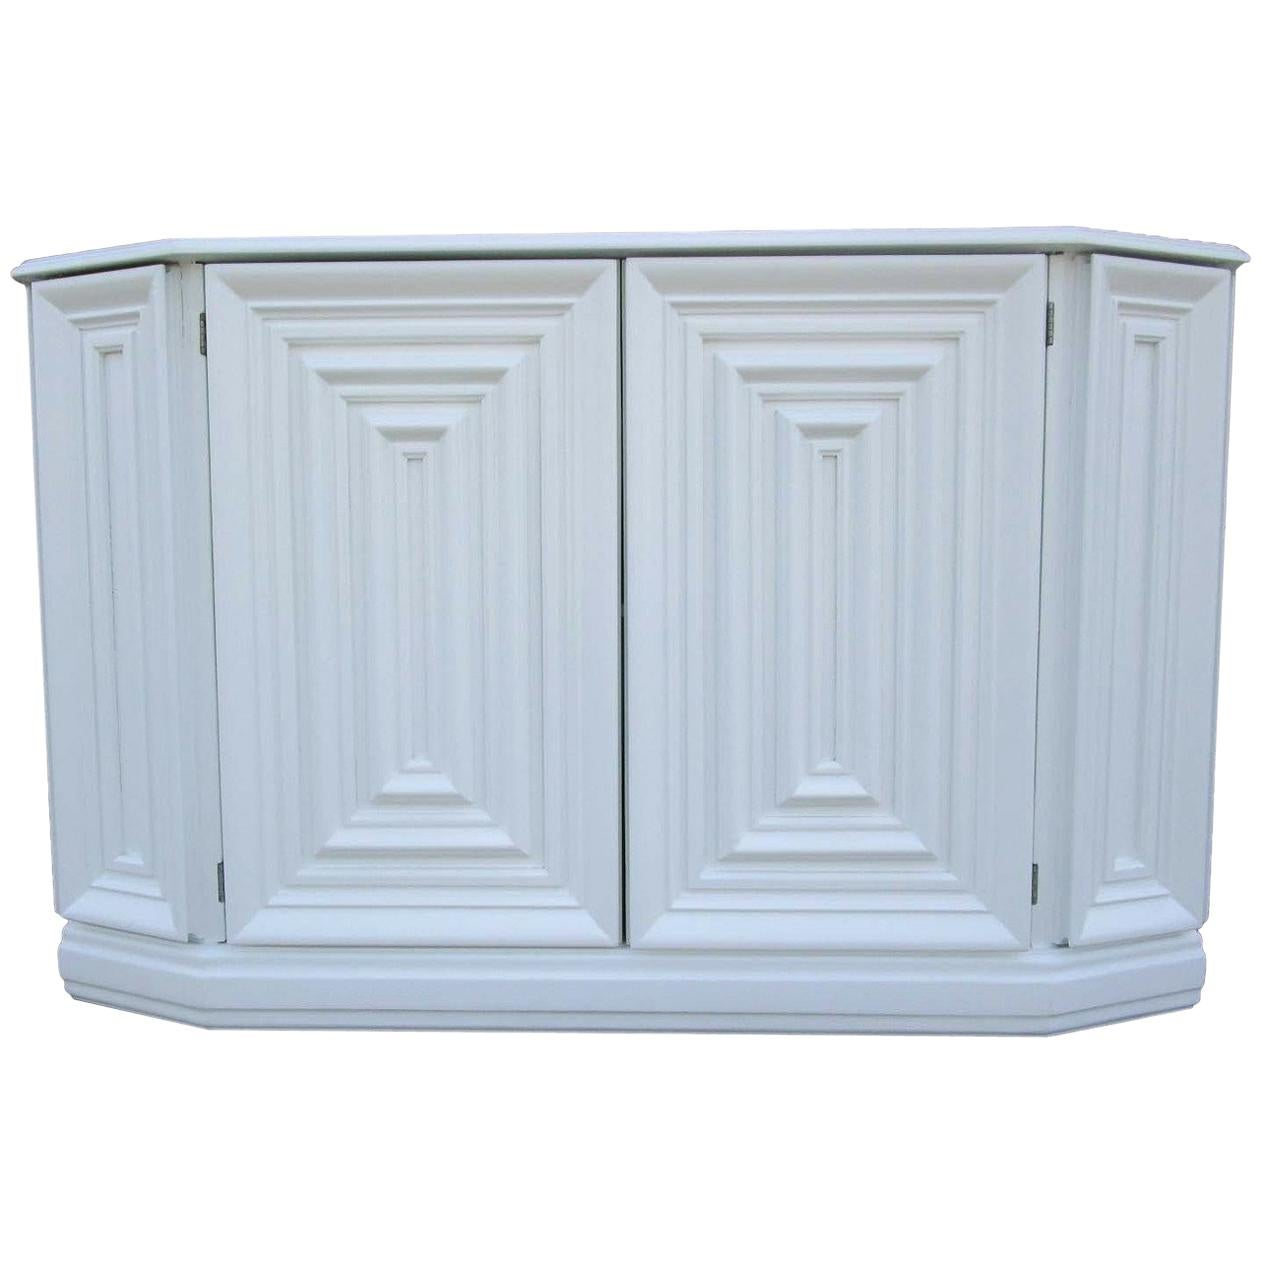 Gentil Elegant Console Cabinet In White Lacquer Finish For Sale